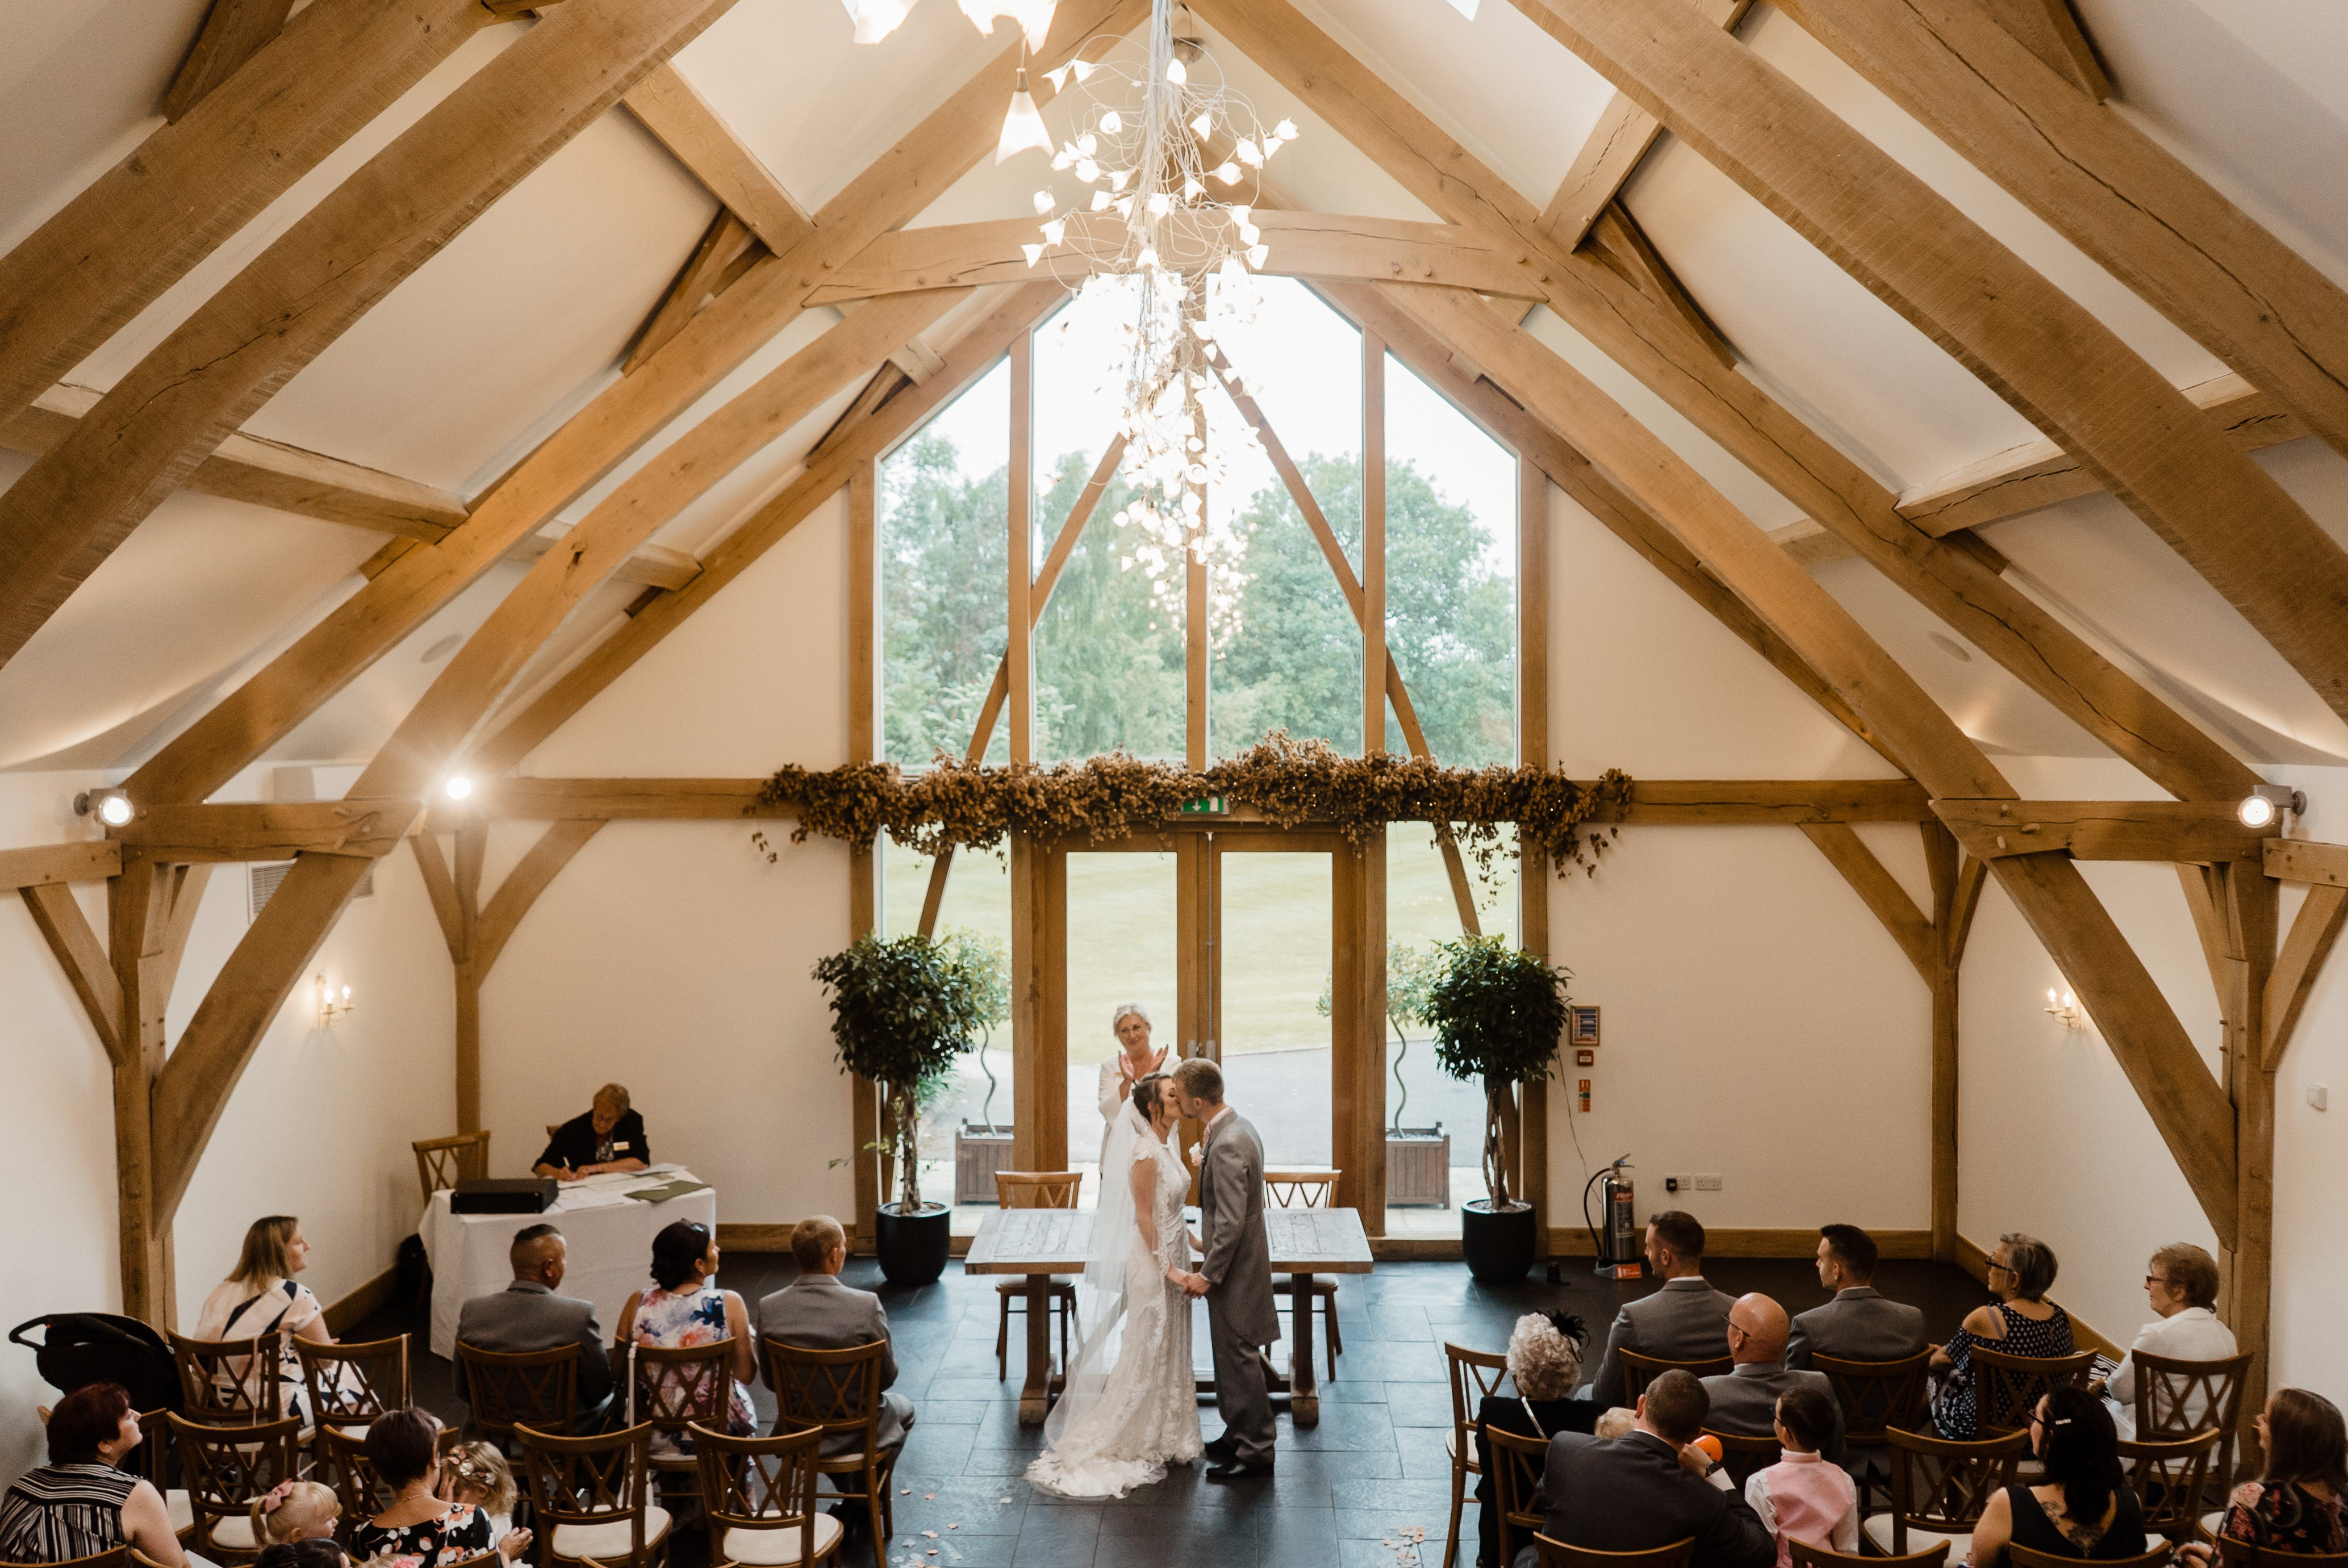 Sneak Peek - Sheryl & Sam Mythe Barn Wedding Ceremony 12